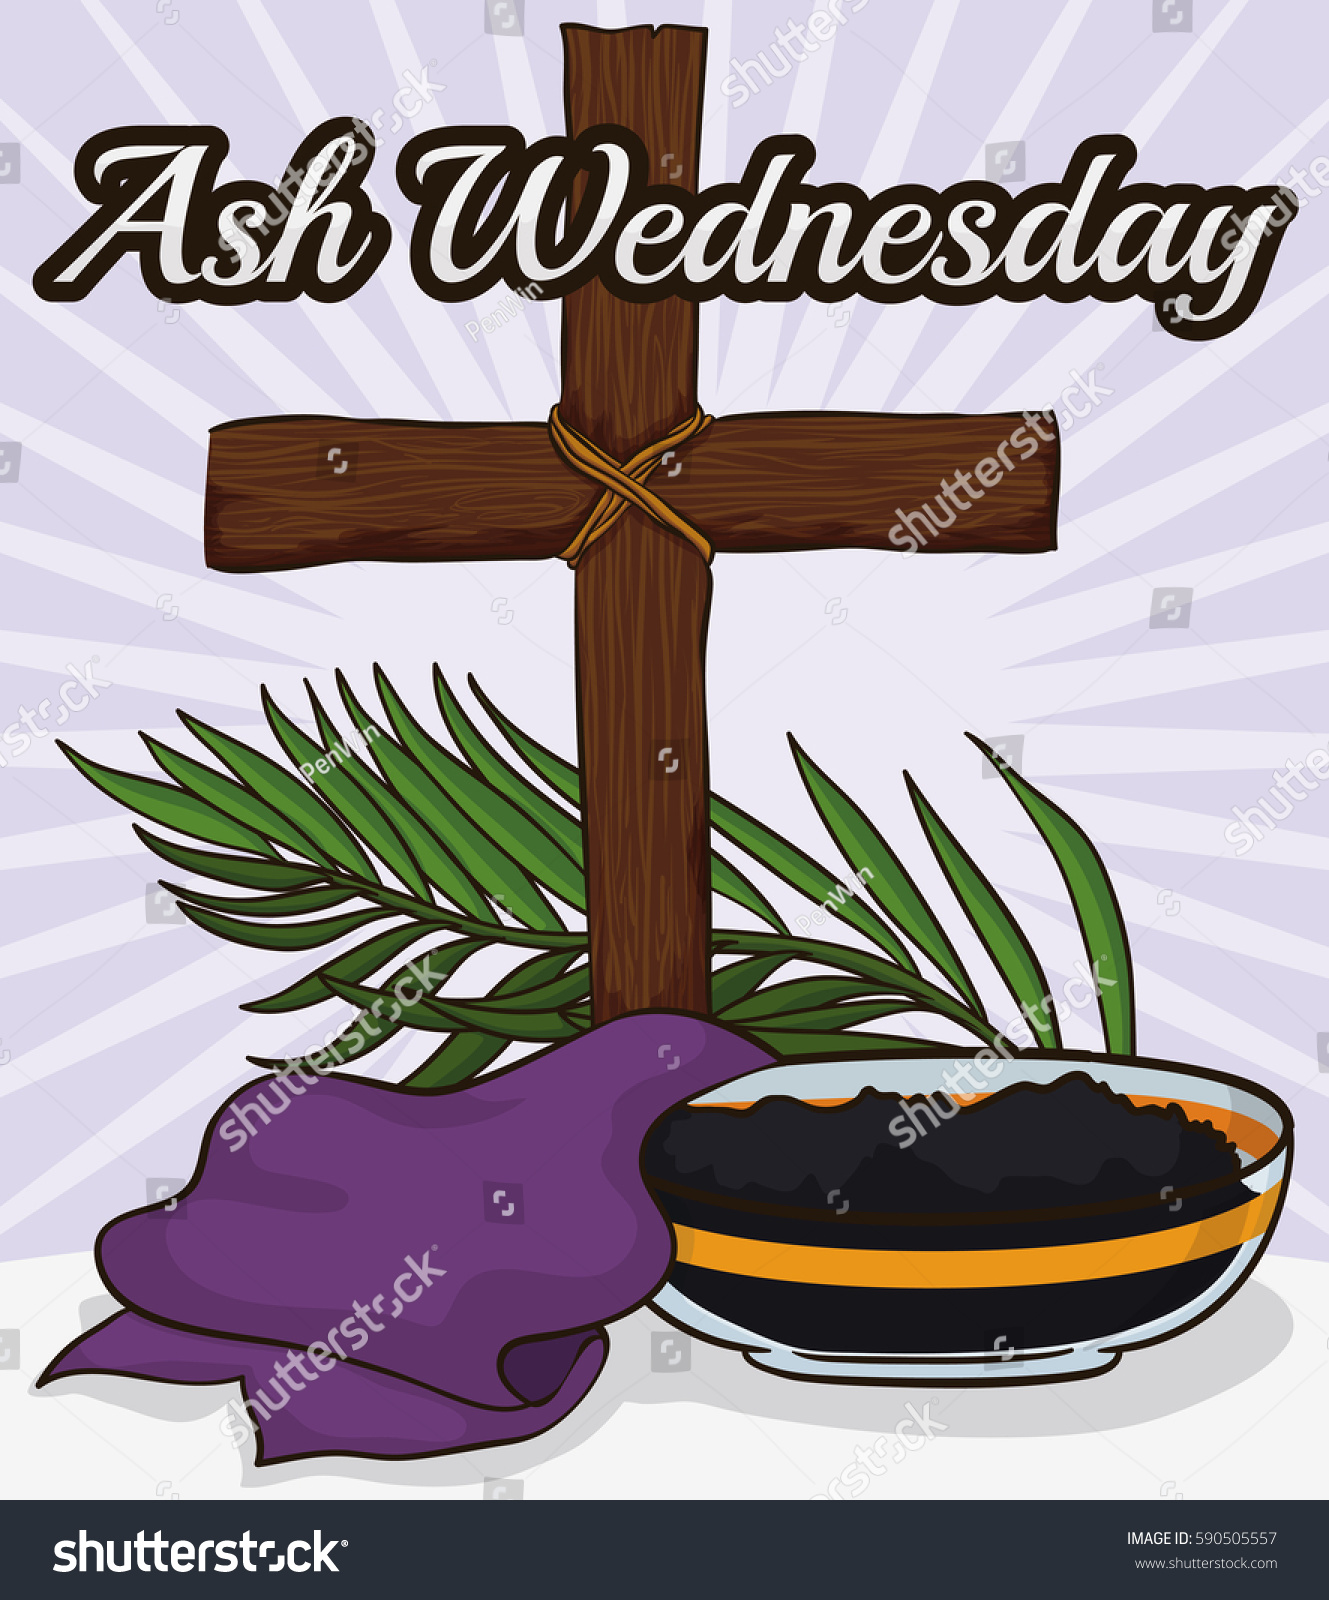 Poster Some Elements Commemorate Ash Wednesday Stock